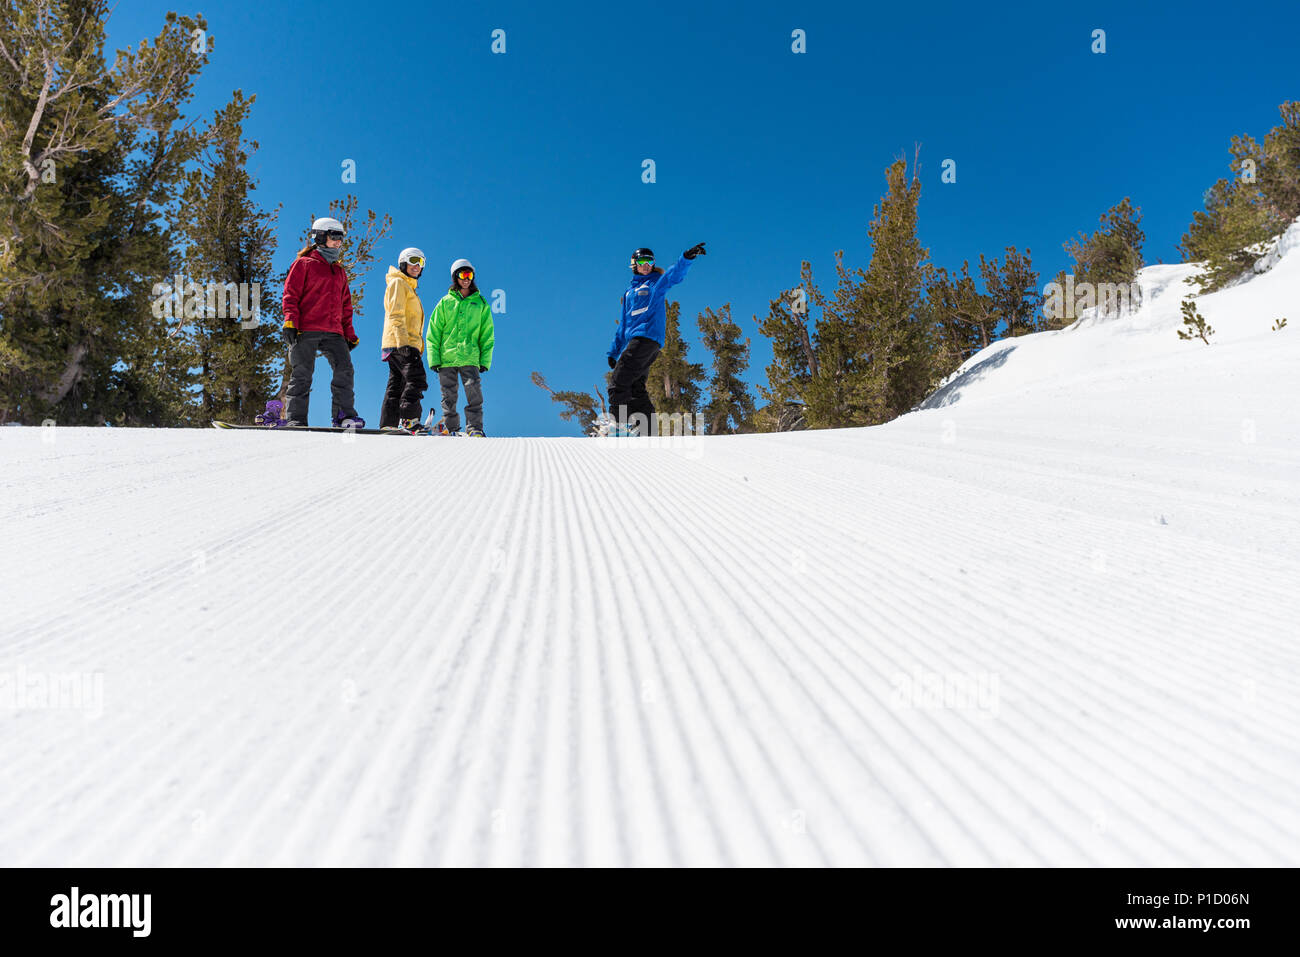 Snowboarding group lessons at Heavenly Valley Ski resort in South Lake Tahoe, California, North America. Stock Photo